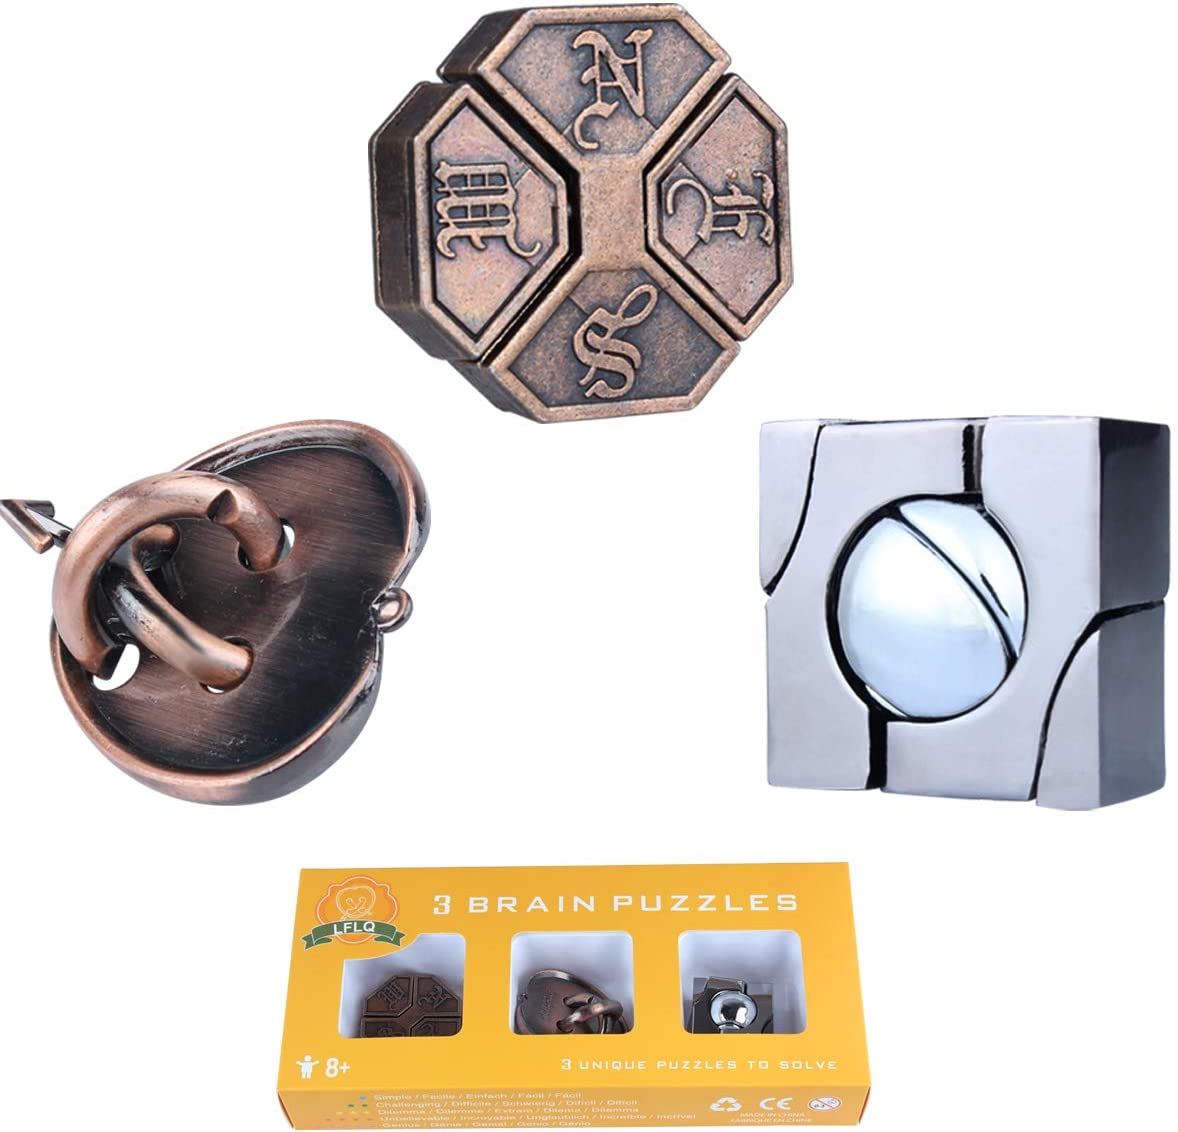 Handheld 3D Unlock Interlocking Puzzle Metal Knot Puzzle Mind Games for Adults Teens Educational Toy 3 Pieces Brain Teaser Metal Puzzle Toy